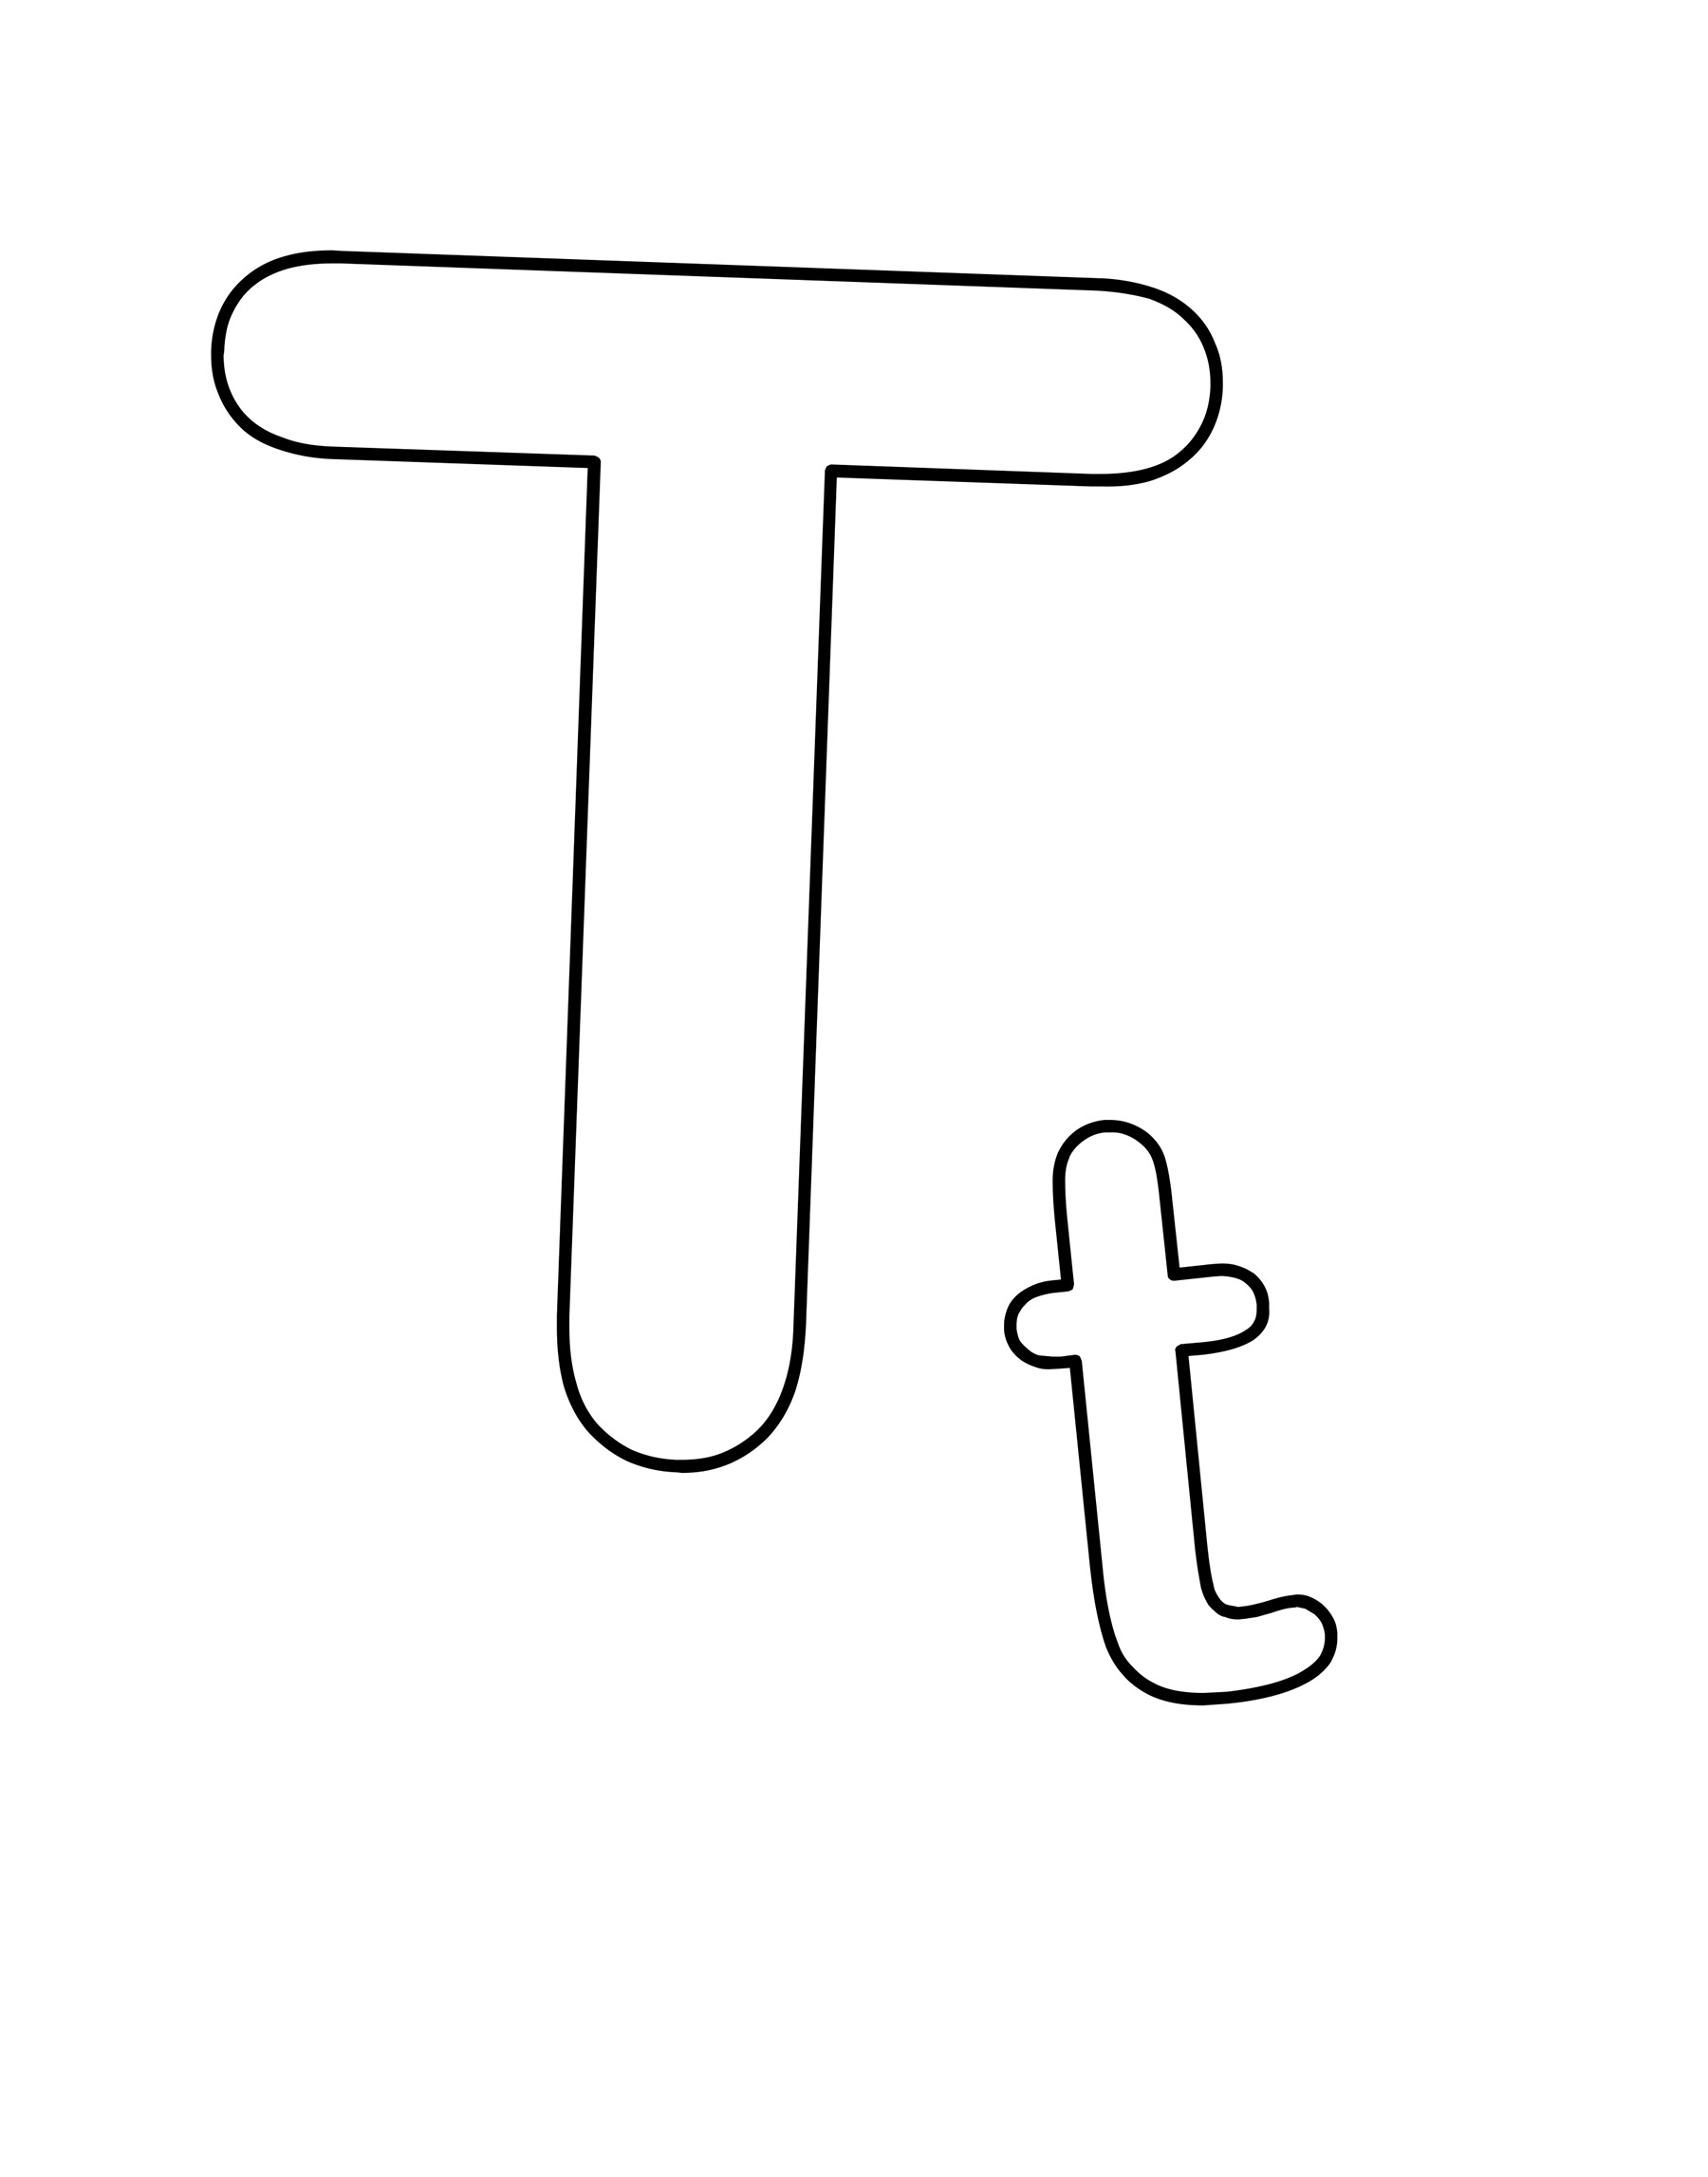 t coloring pages - photo #16